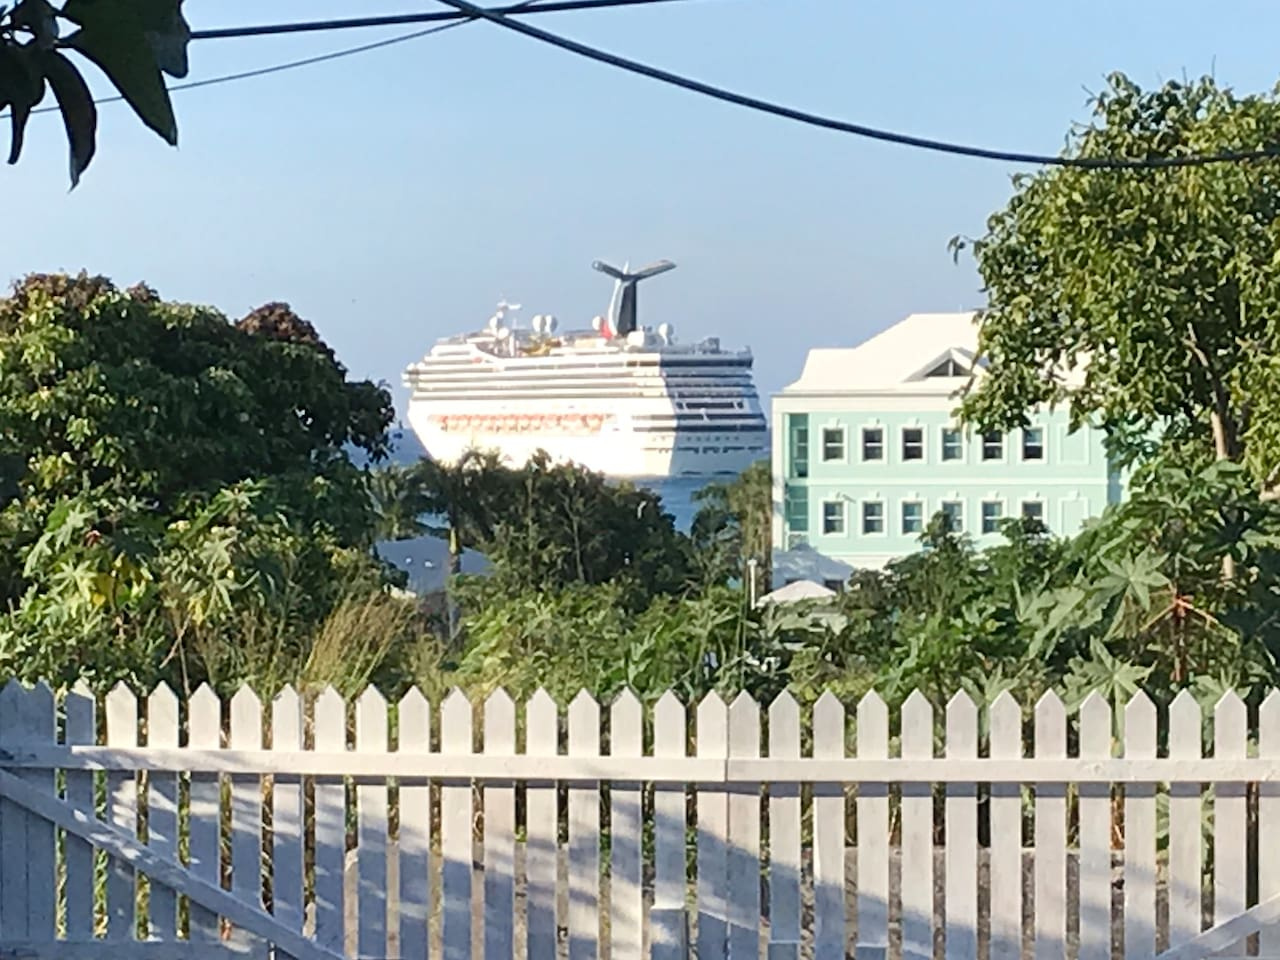 Watch the cruise ship sail by from your private yard.